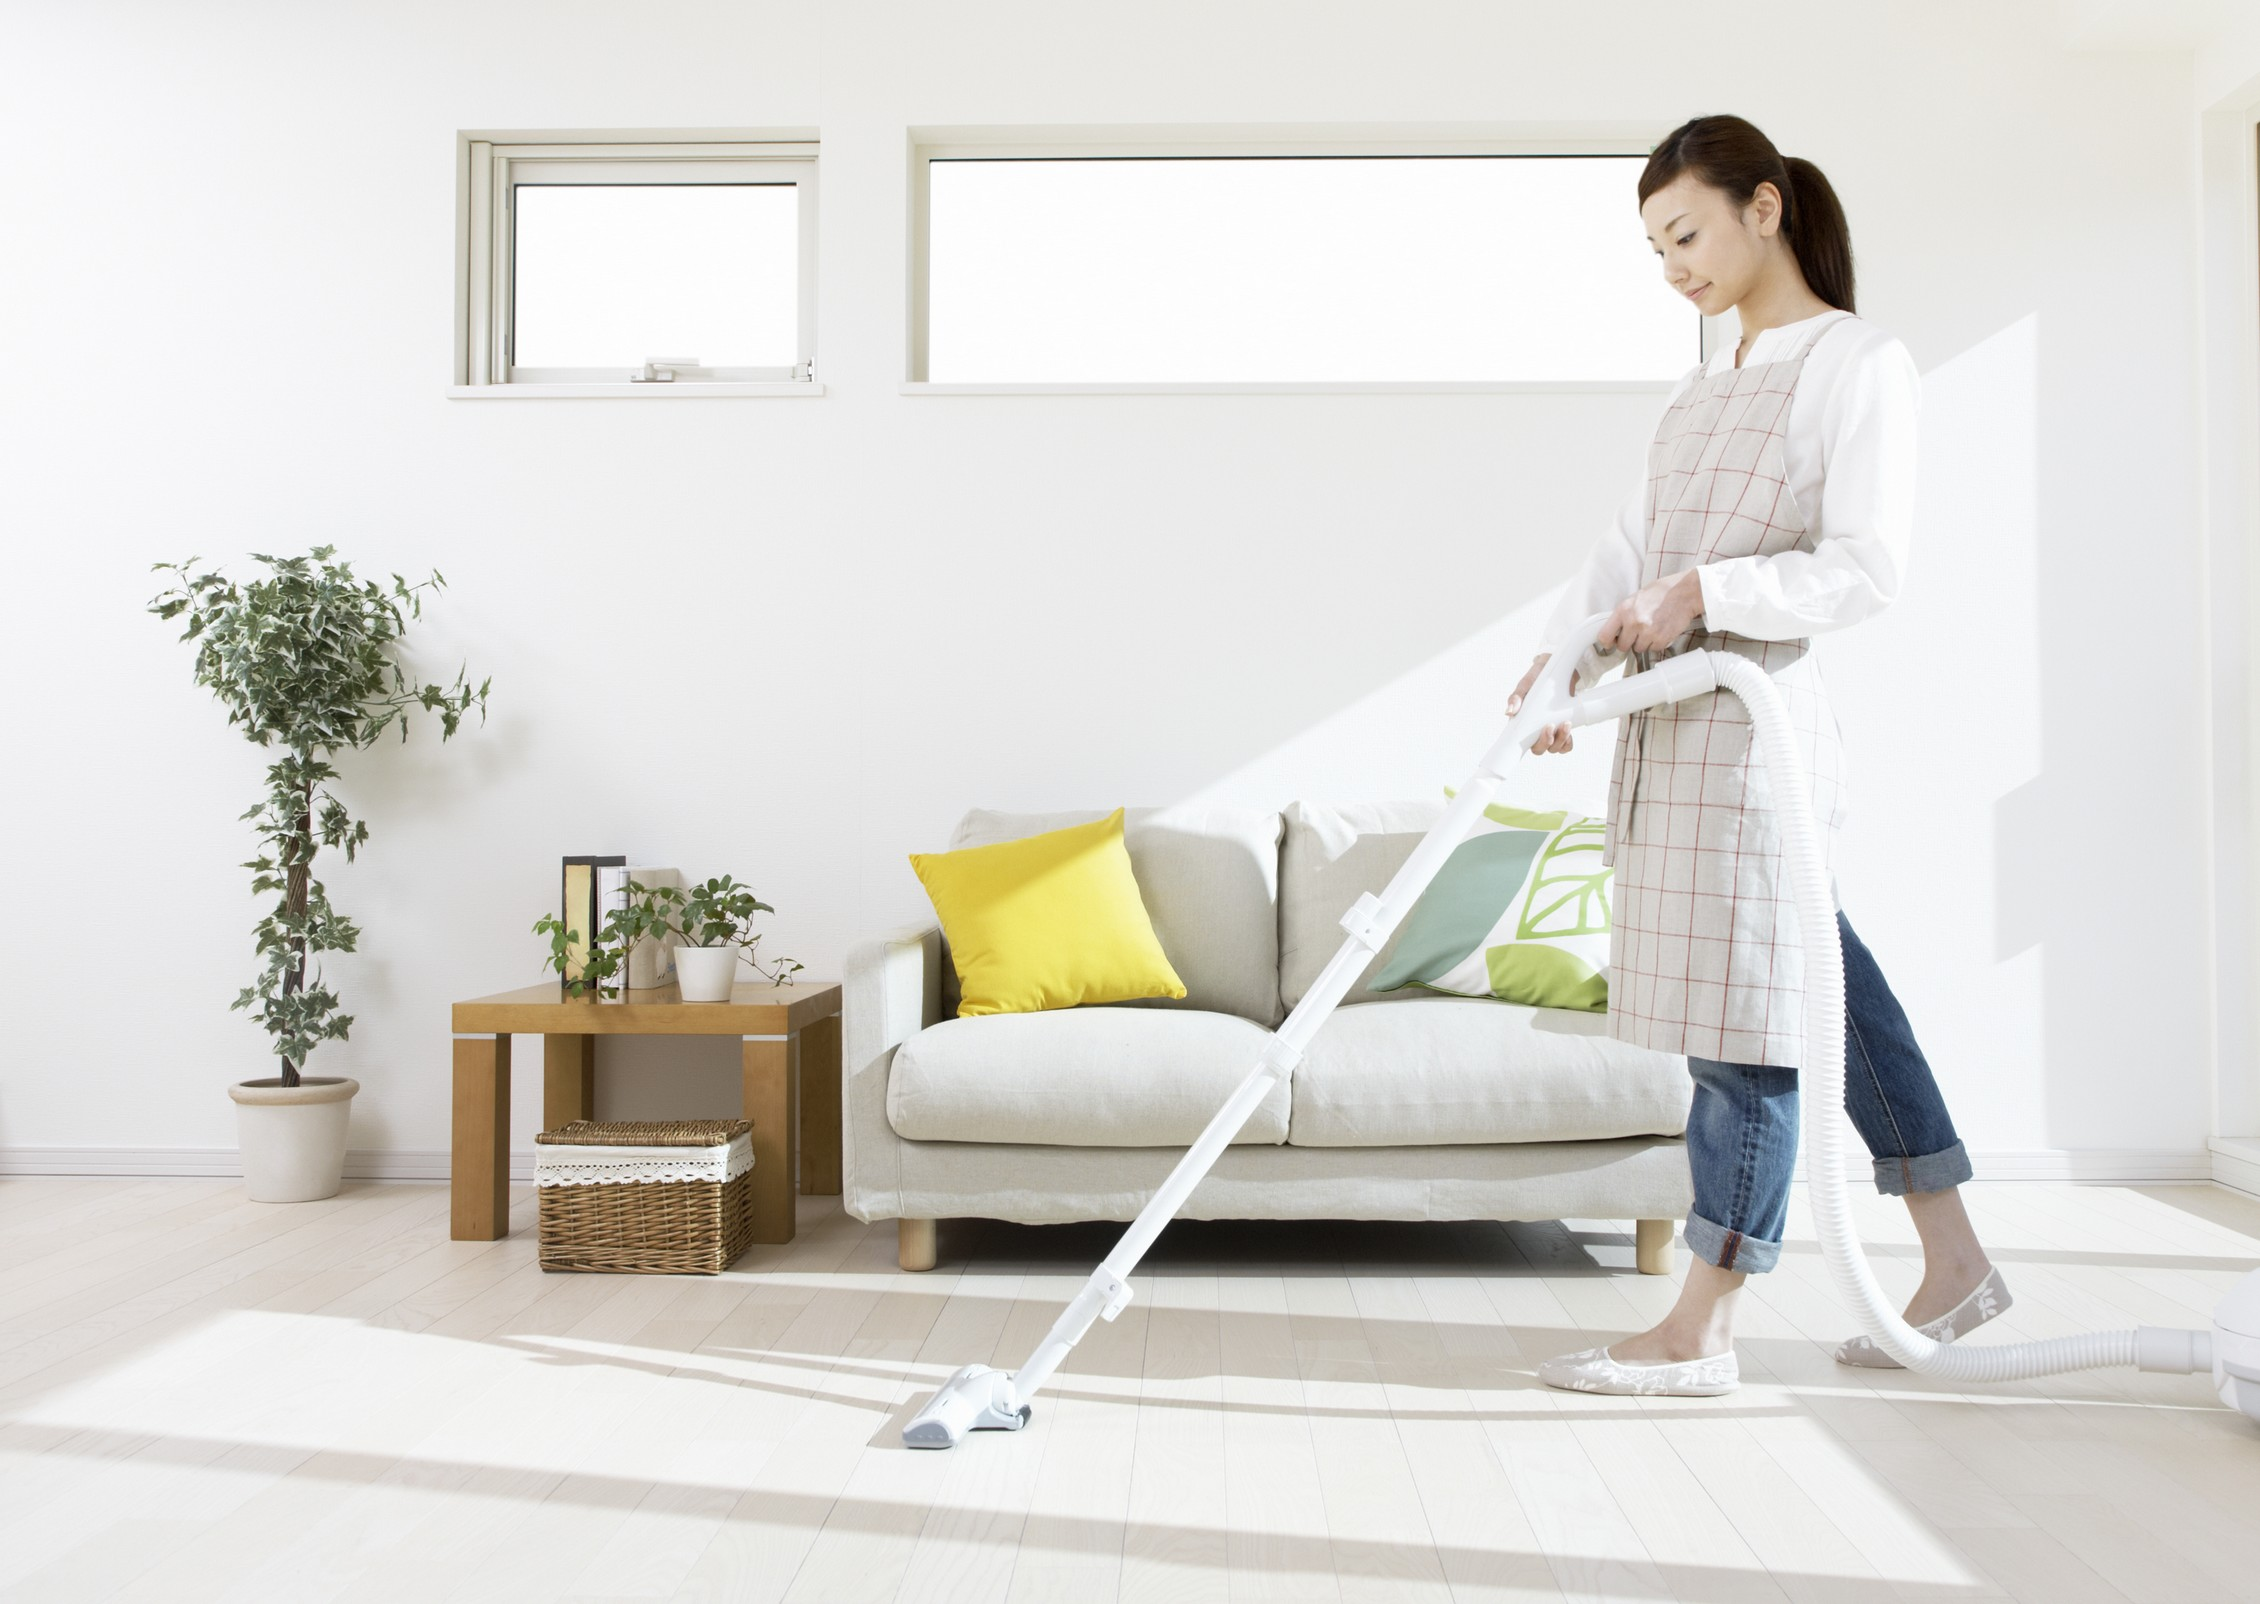 THE RENTER'S GUIDE TO END-OF-LEASE CLEANING